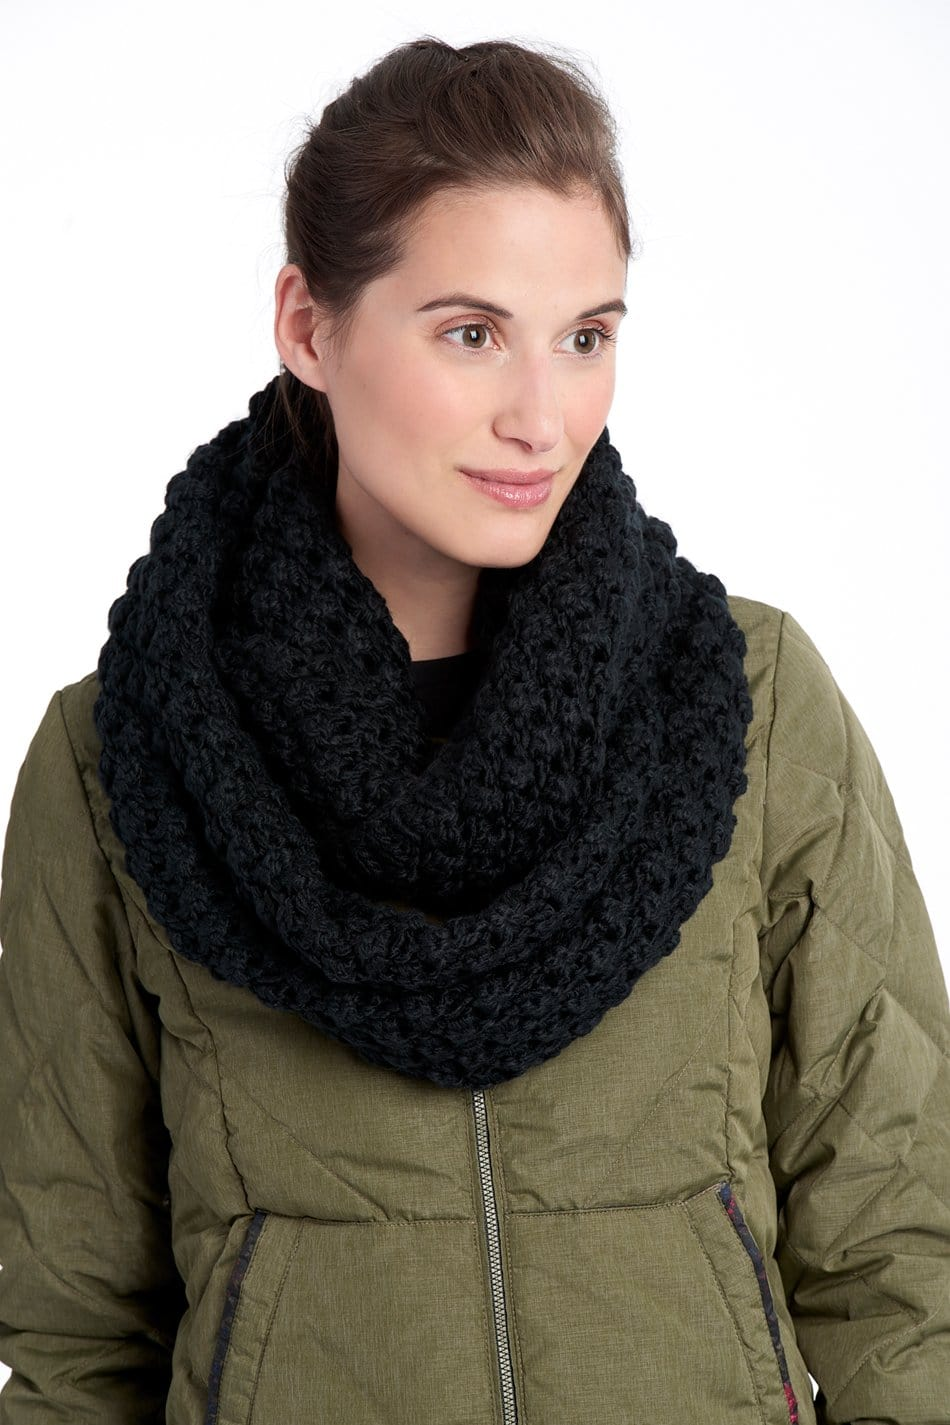 Women's Popcorn Eternity Scarf